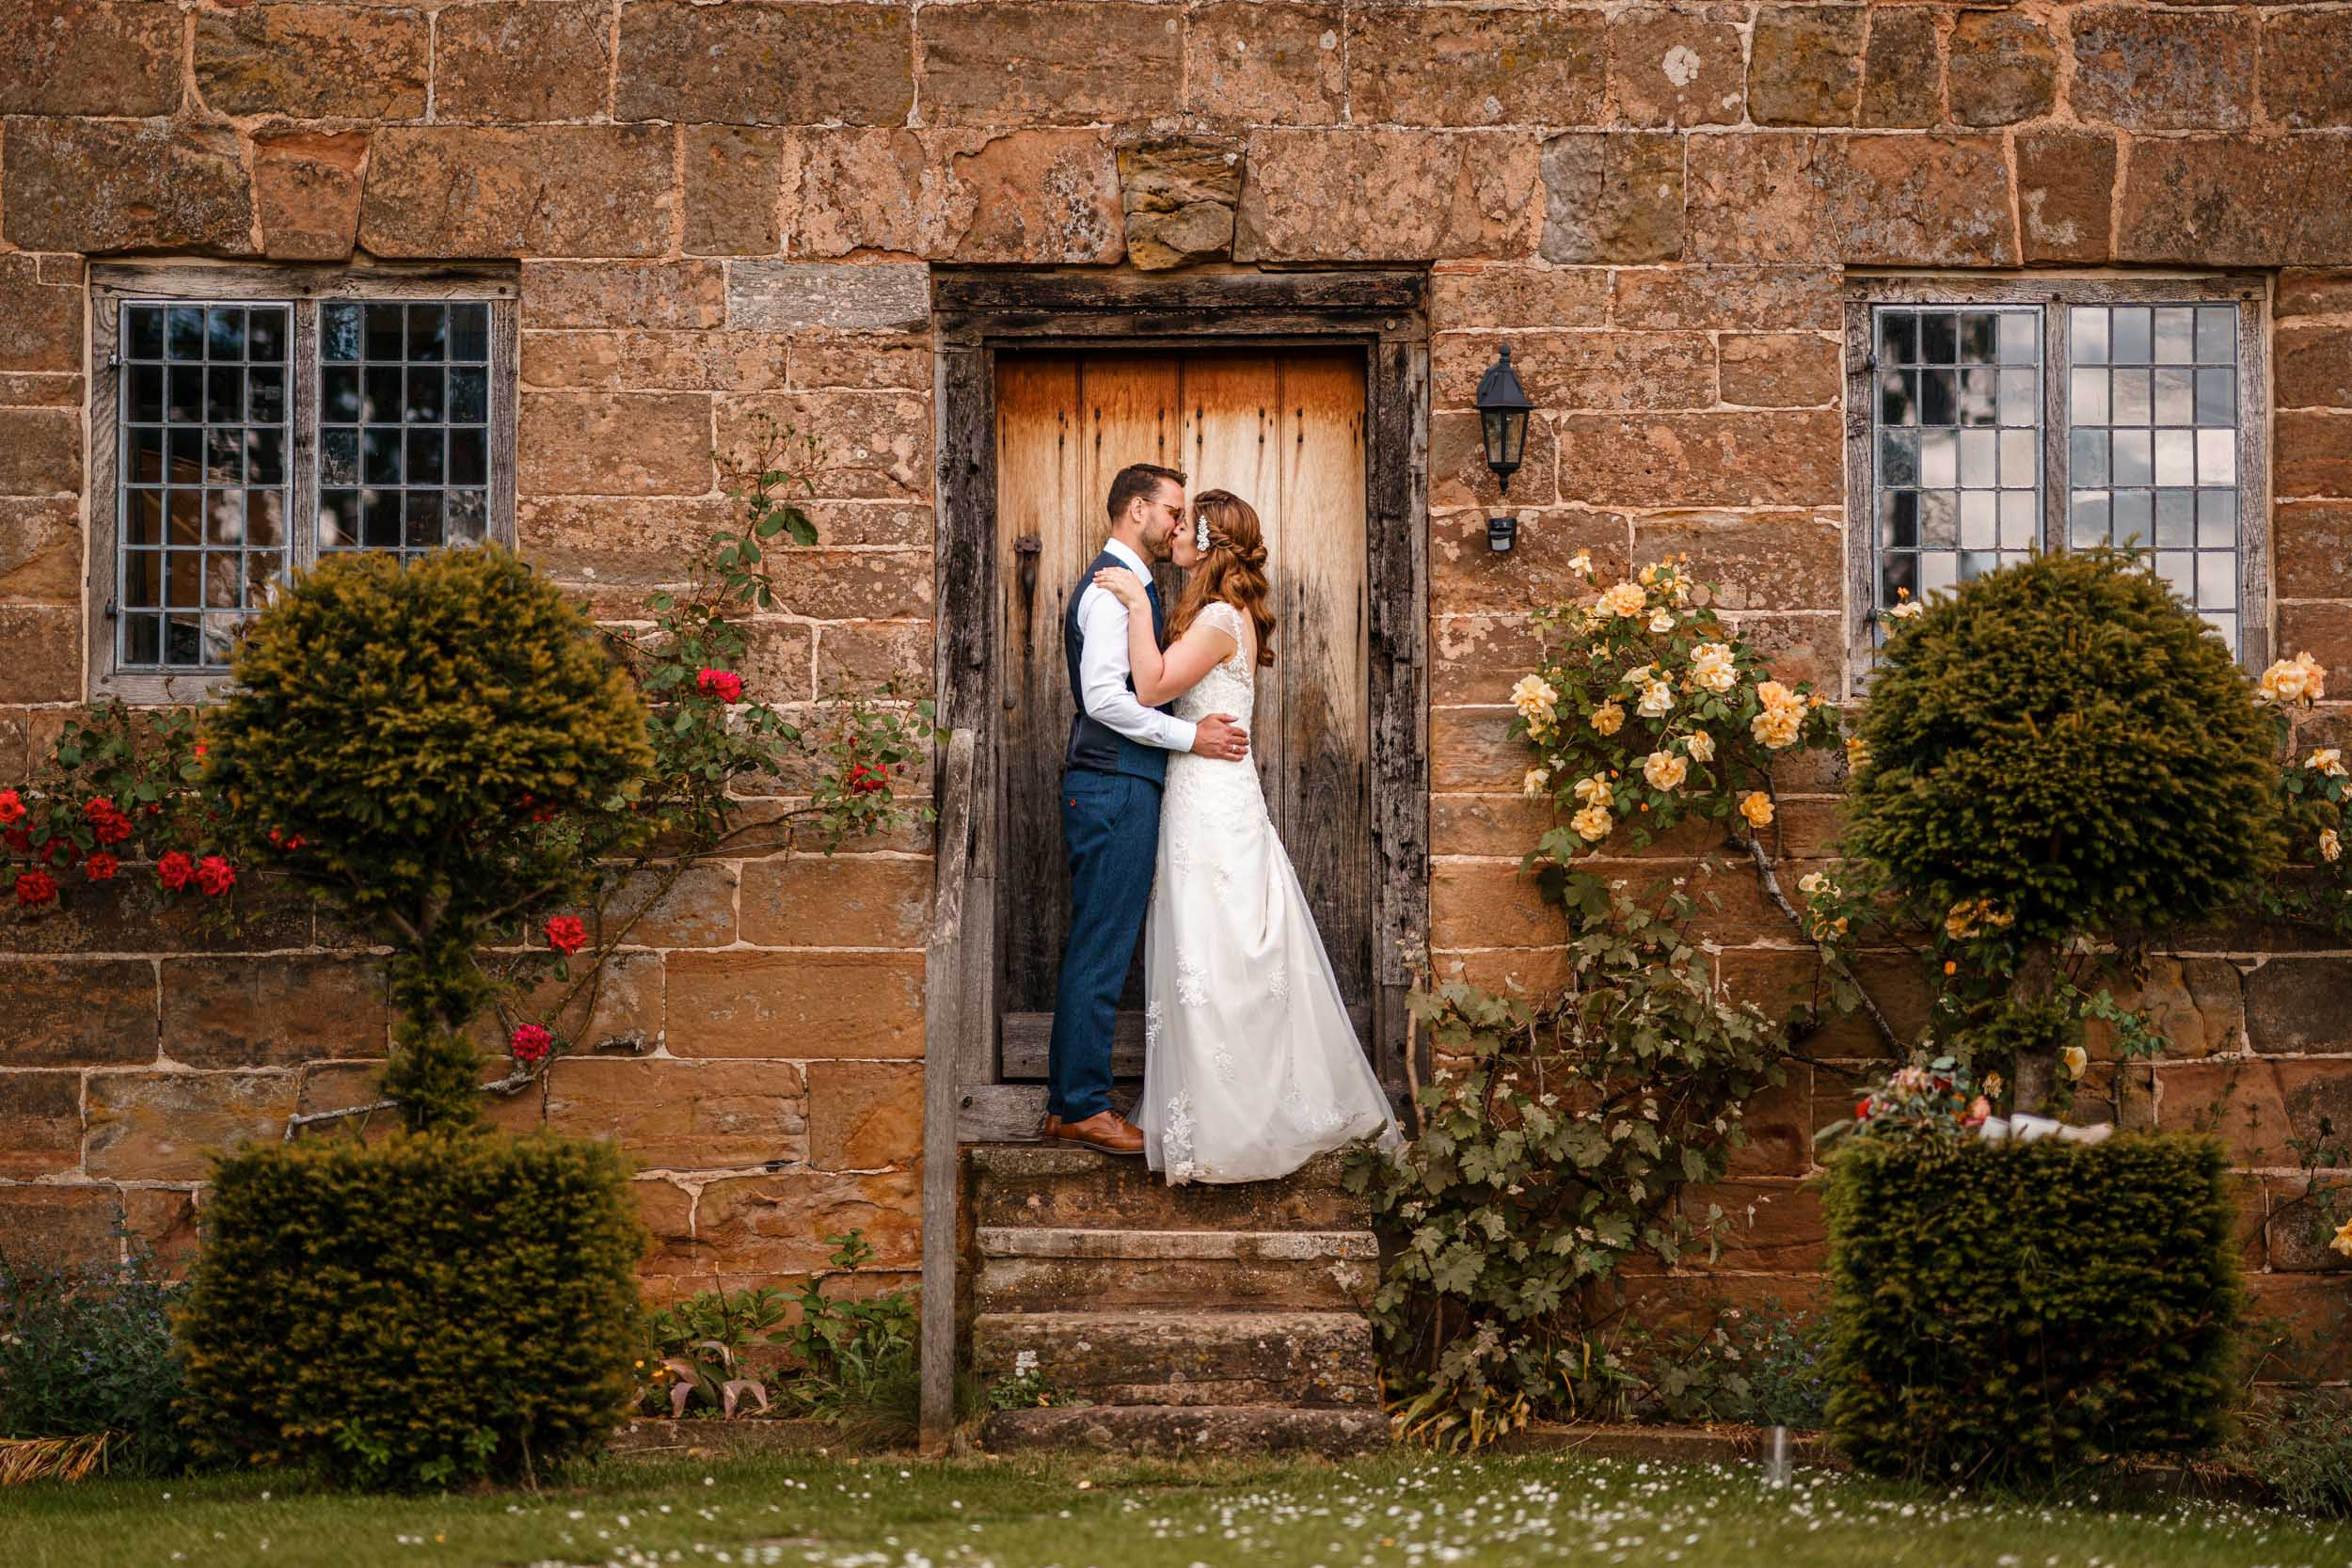 Wedding Photographers in Herefordshire, Herefordshire Wedding Photography, Herefordshire Weddings, David Liebst Photography,